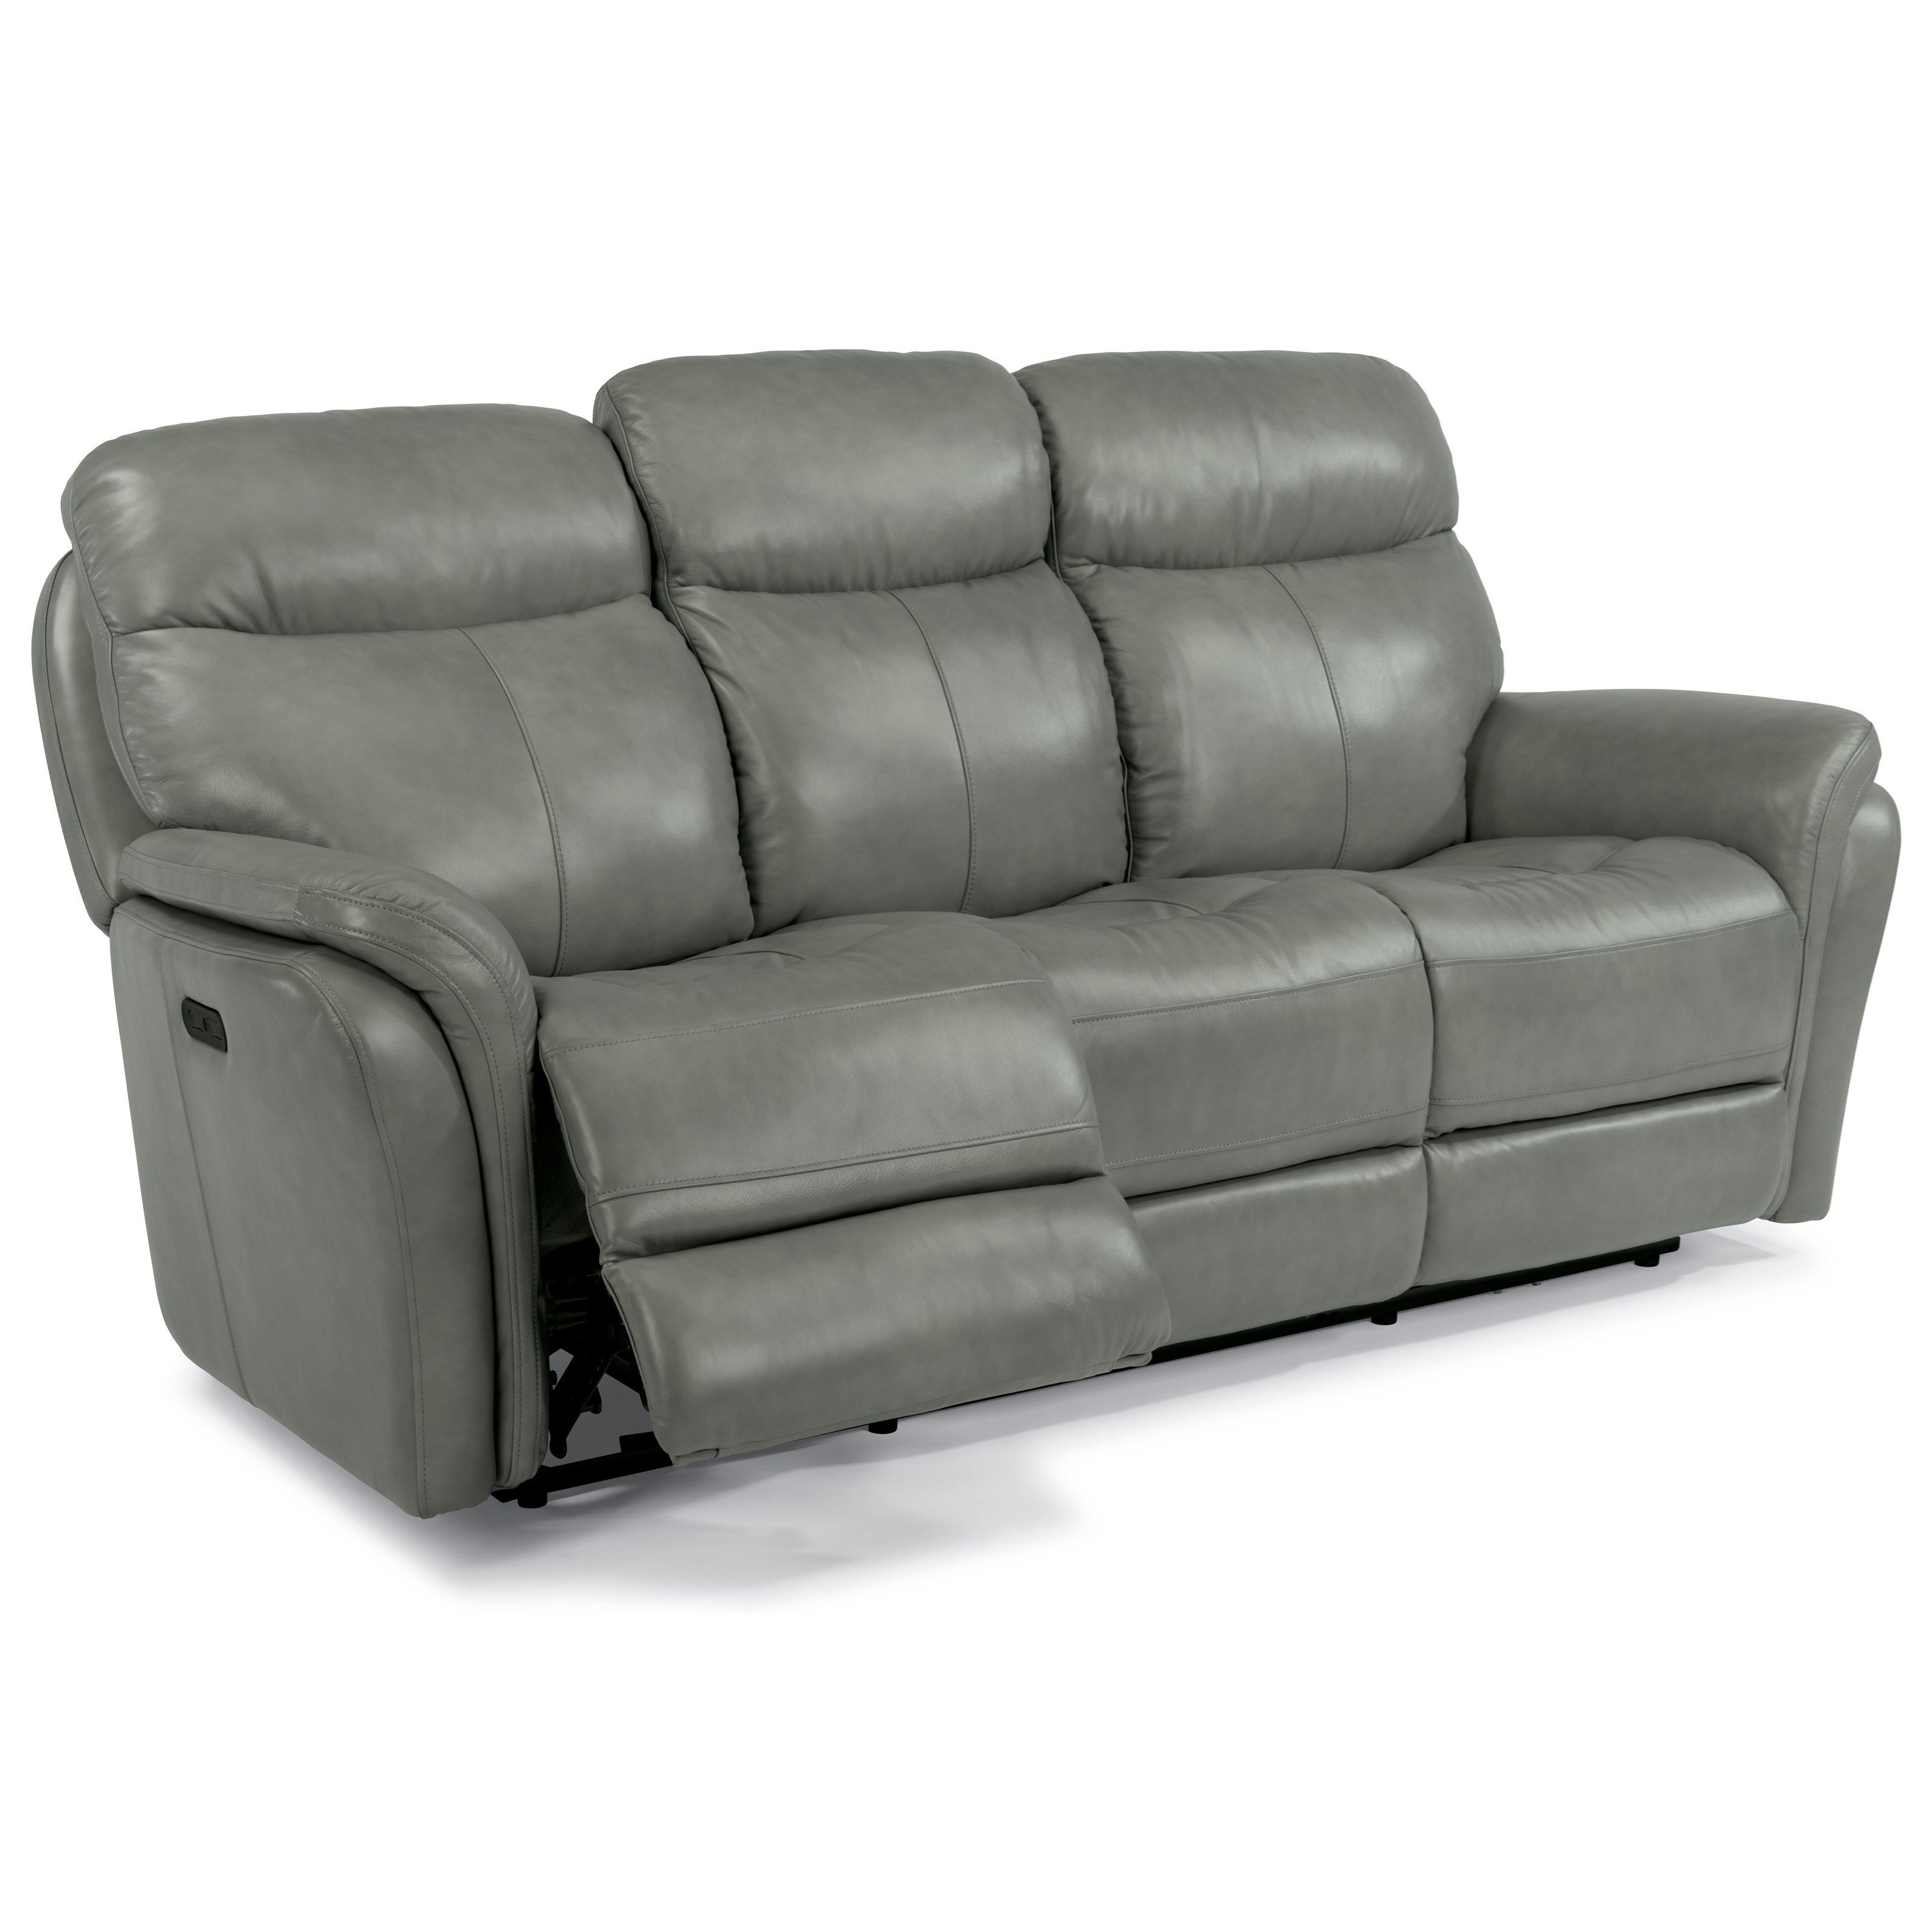 Latitudes Zoey Power Reclining Sofa With Power Headrest And Usb